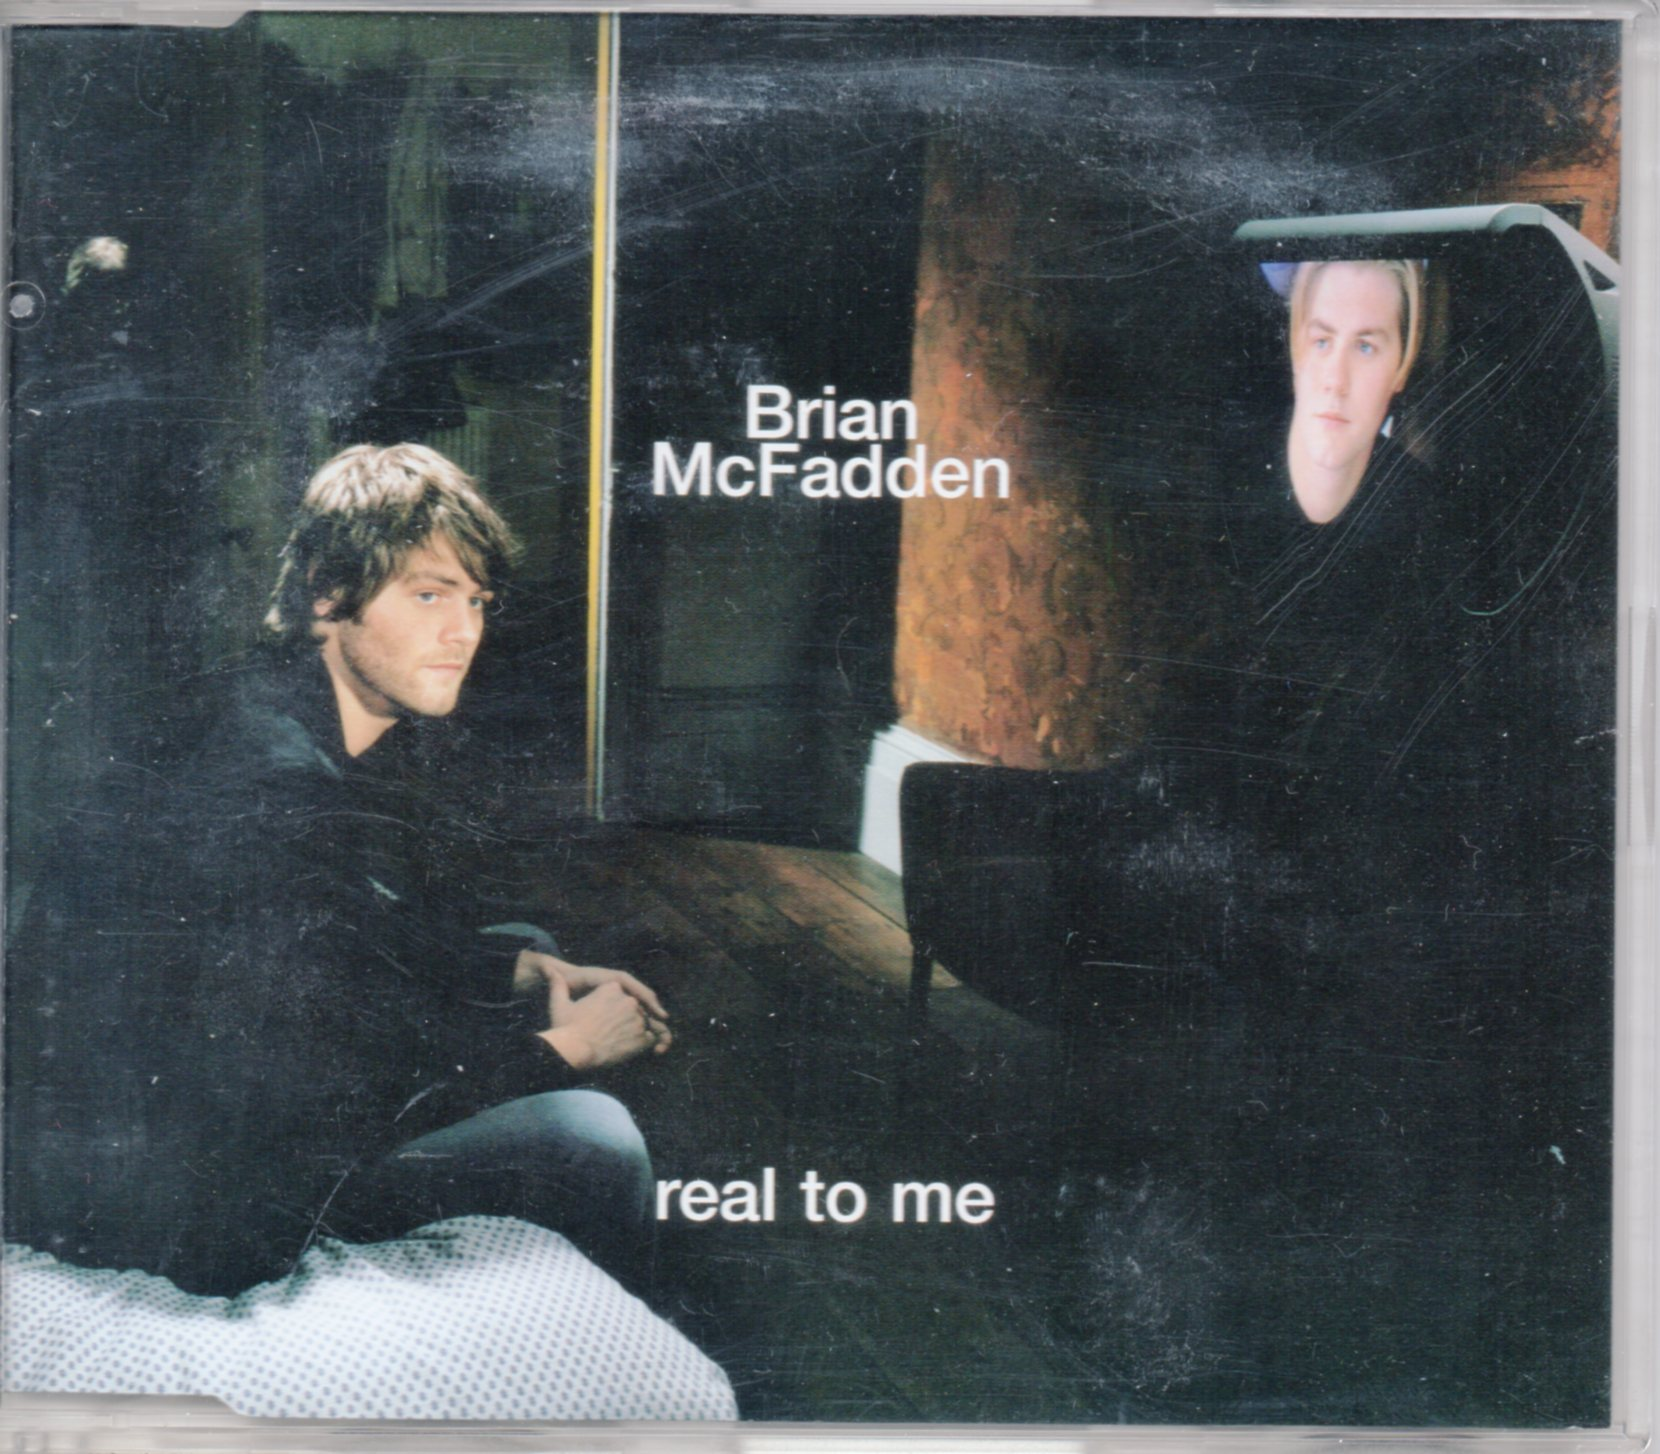 BRIAN MCFADDEN - Real to me PROMO 2-track Jewel case - CD Maxi